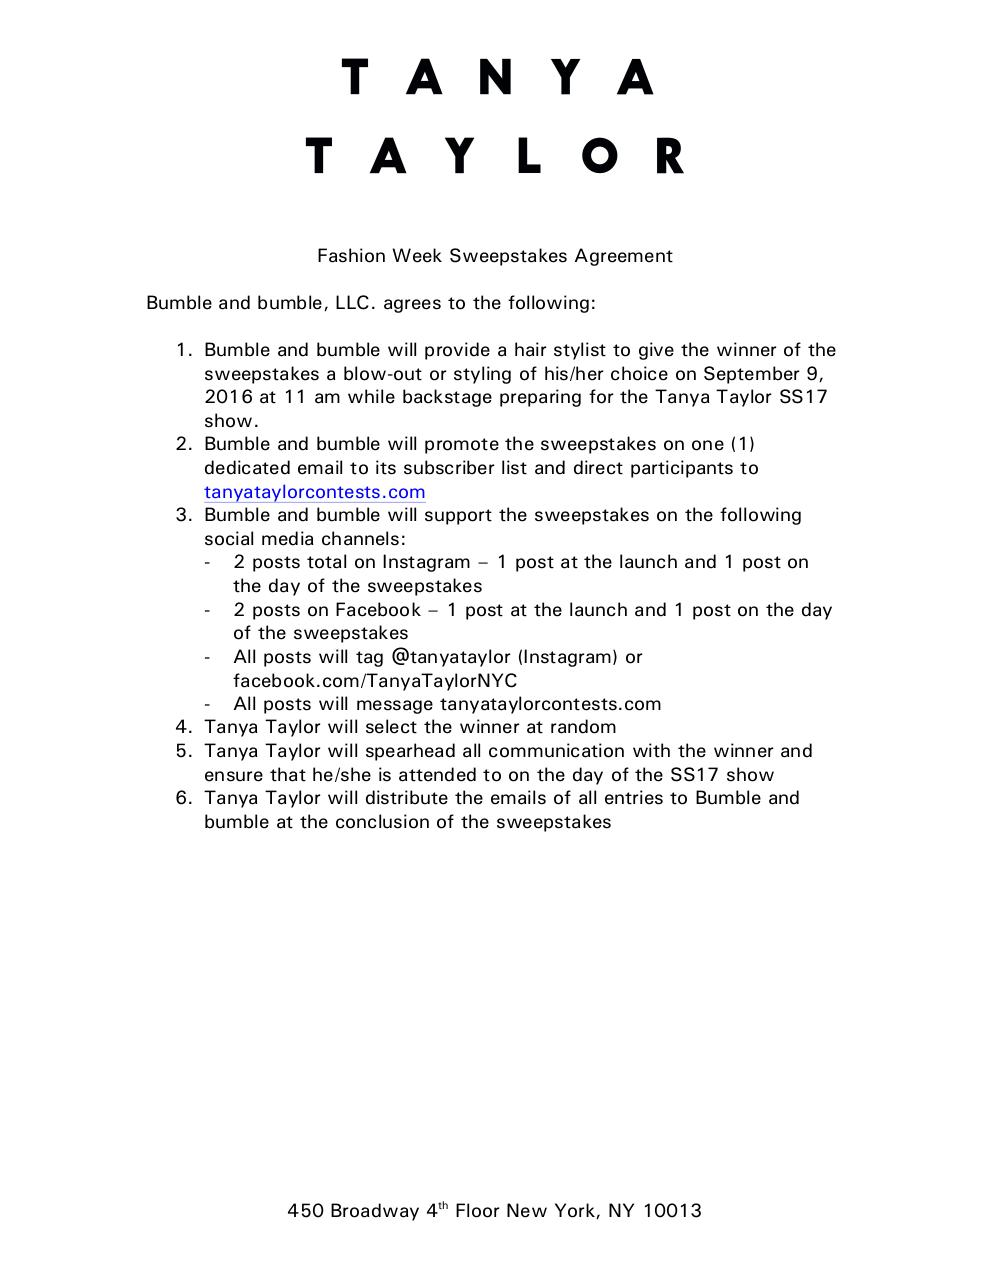 Tanya Taylor Fashion Week Sweepstakes Agreement TAR comments.pdf - page 1/6